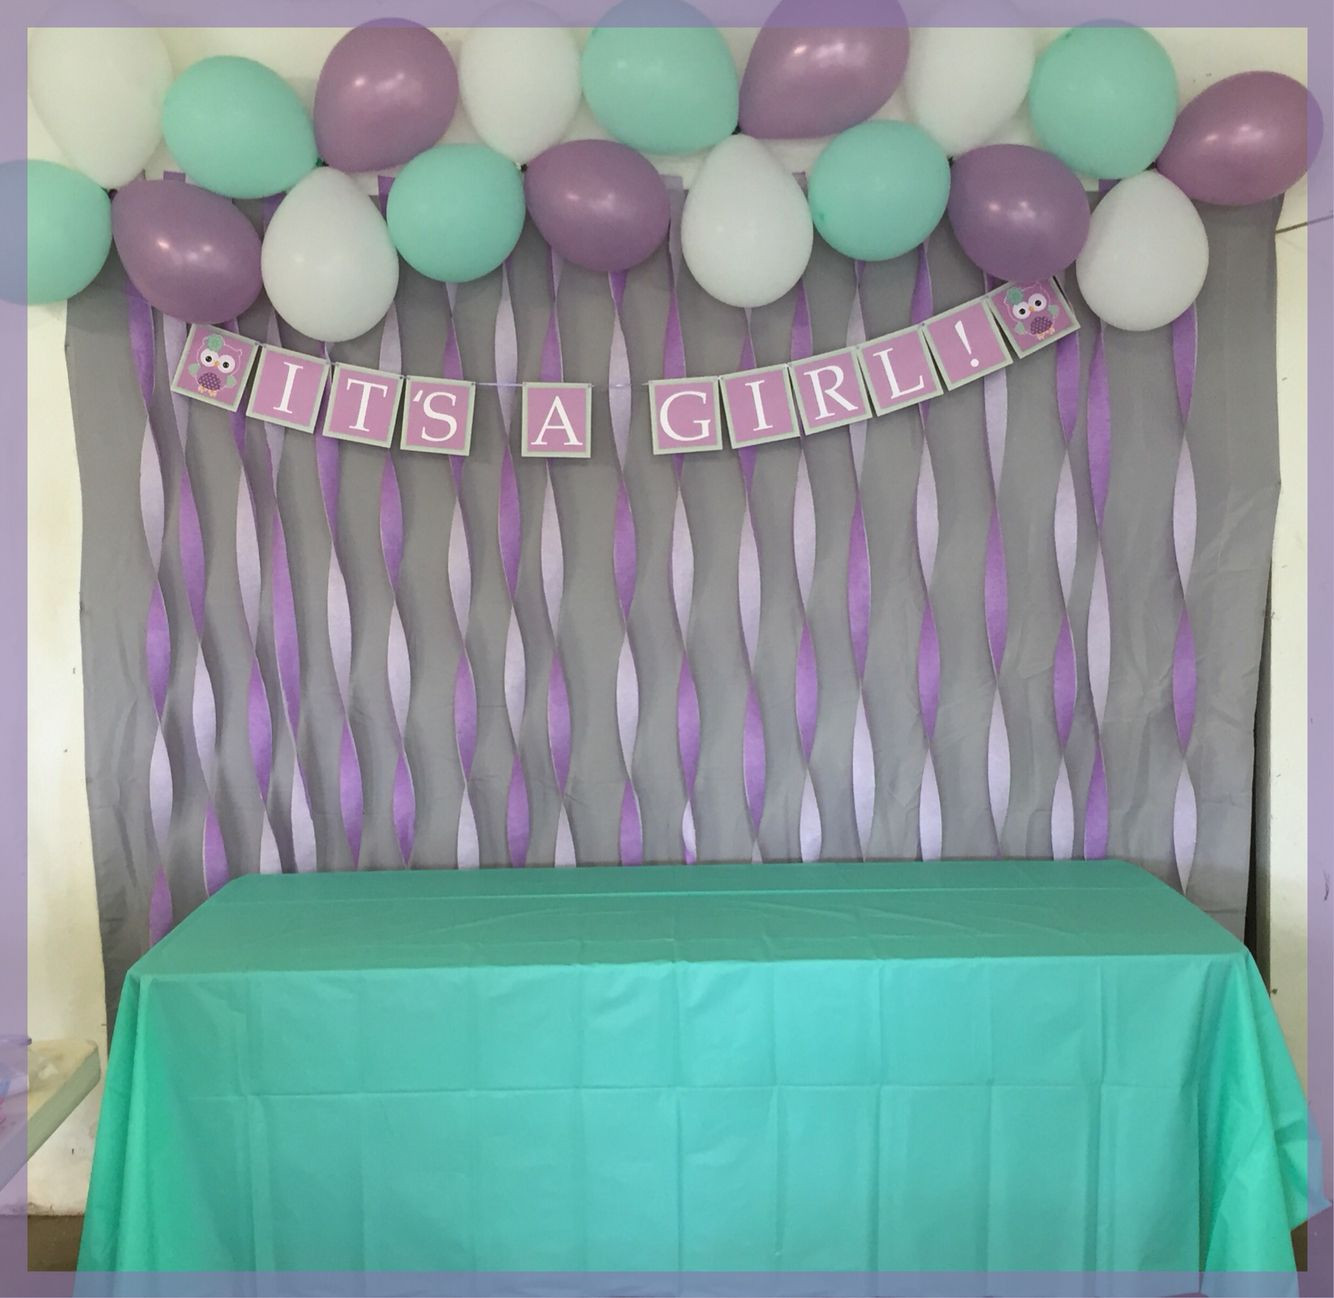 Best ideas about DIY Baby Shower Decorations Ideas . Save or Pin Best 25 Diy baby shower decorations ideas on Pinterest Now.